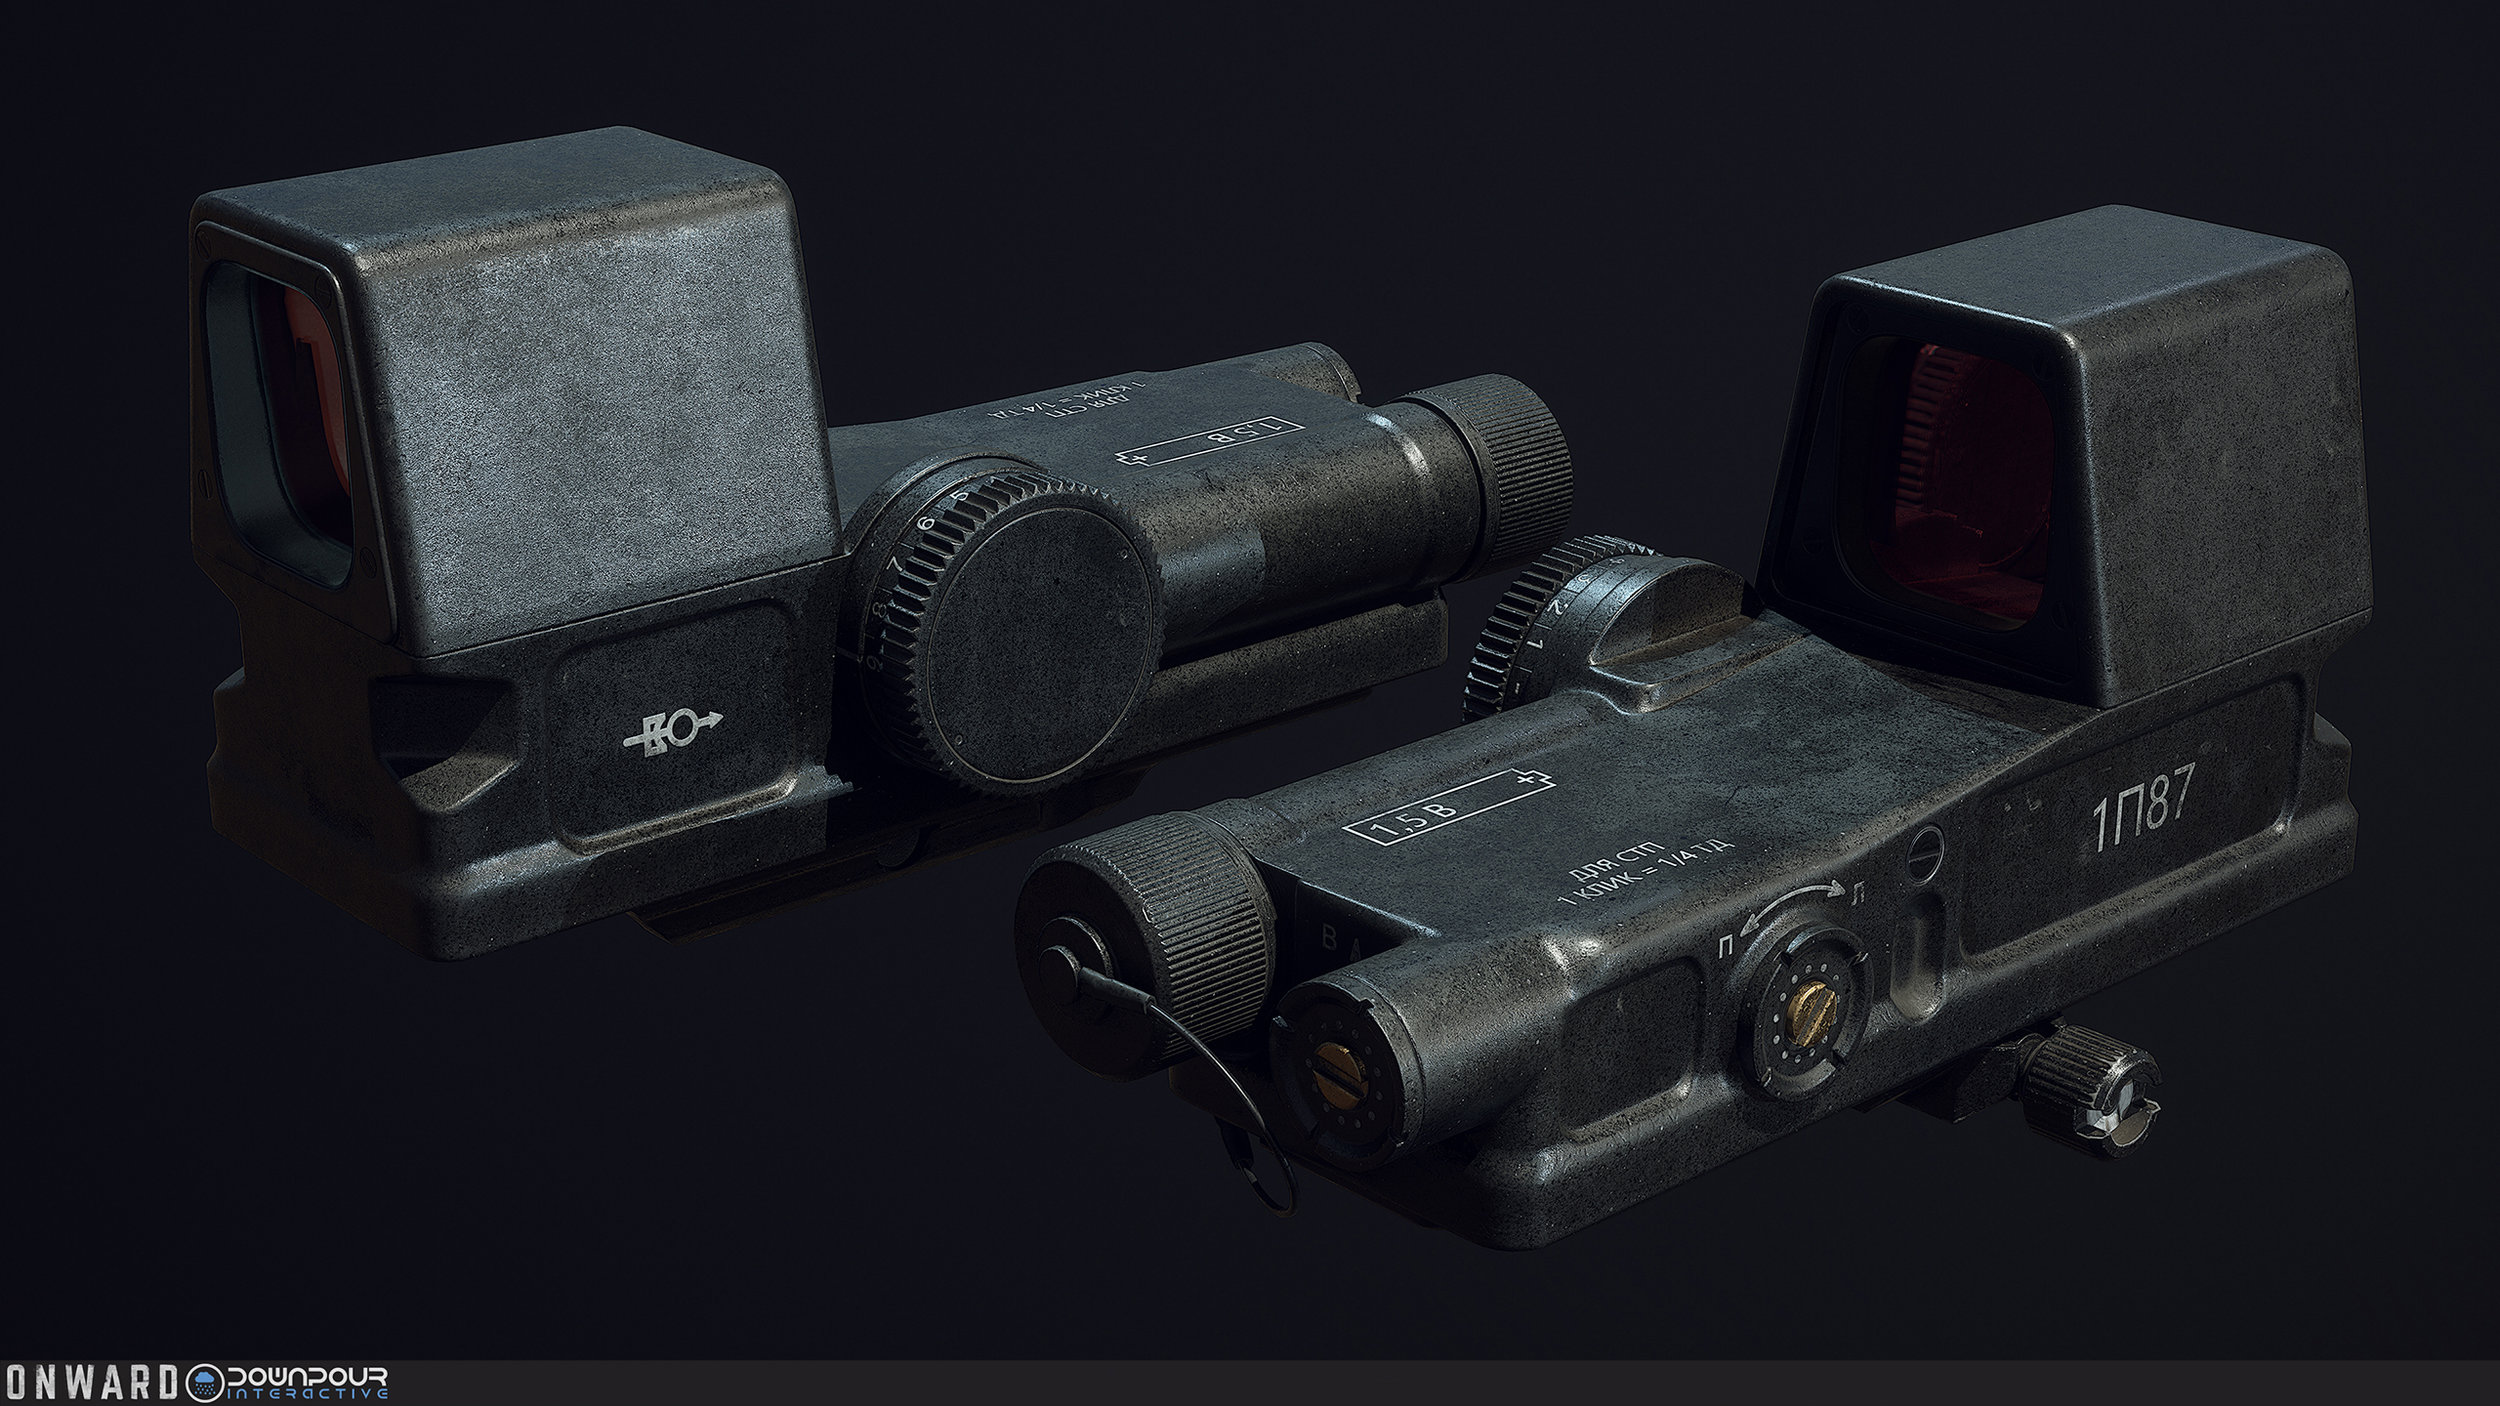 PK-120: This is the replacement for the Volk faction's holographic sight.